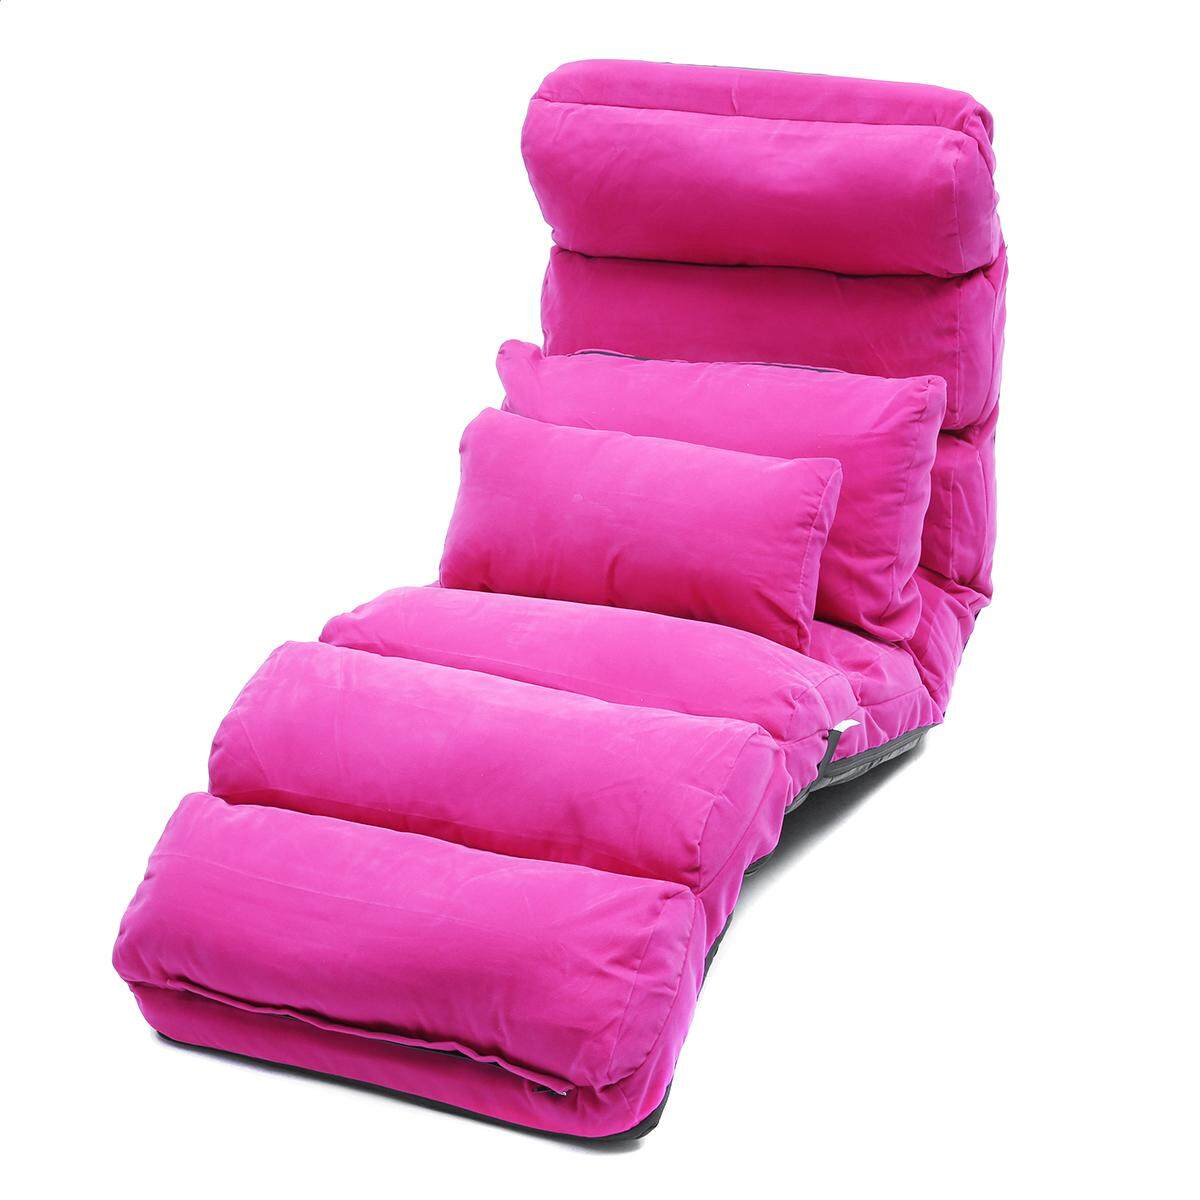 Lounge Sofa Bed Floor Recliner Folding Chaise Chair Adjustable Foldable AU Home Rose(Lengthen Size) - intl